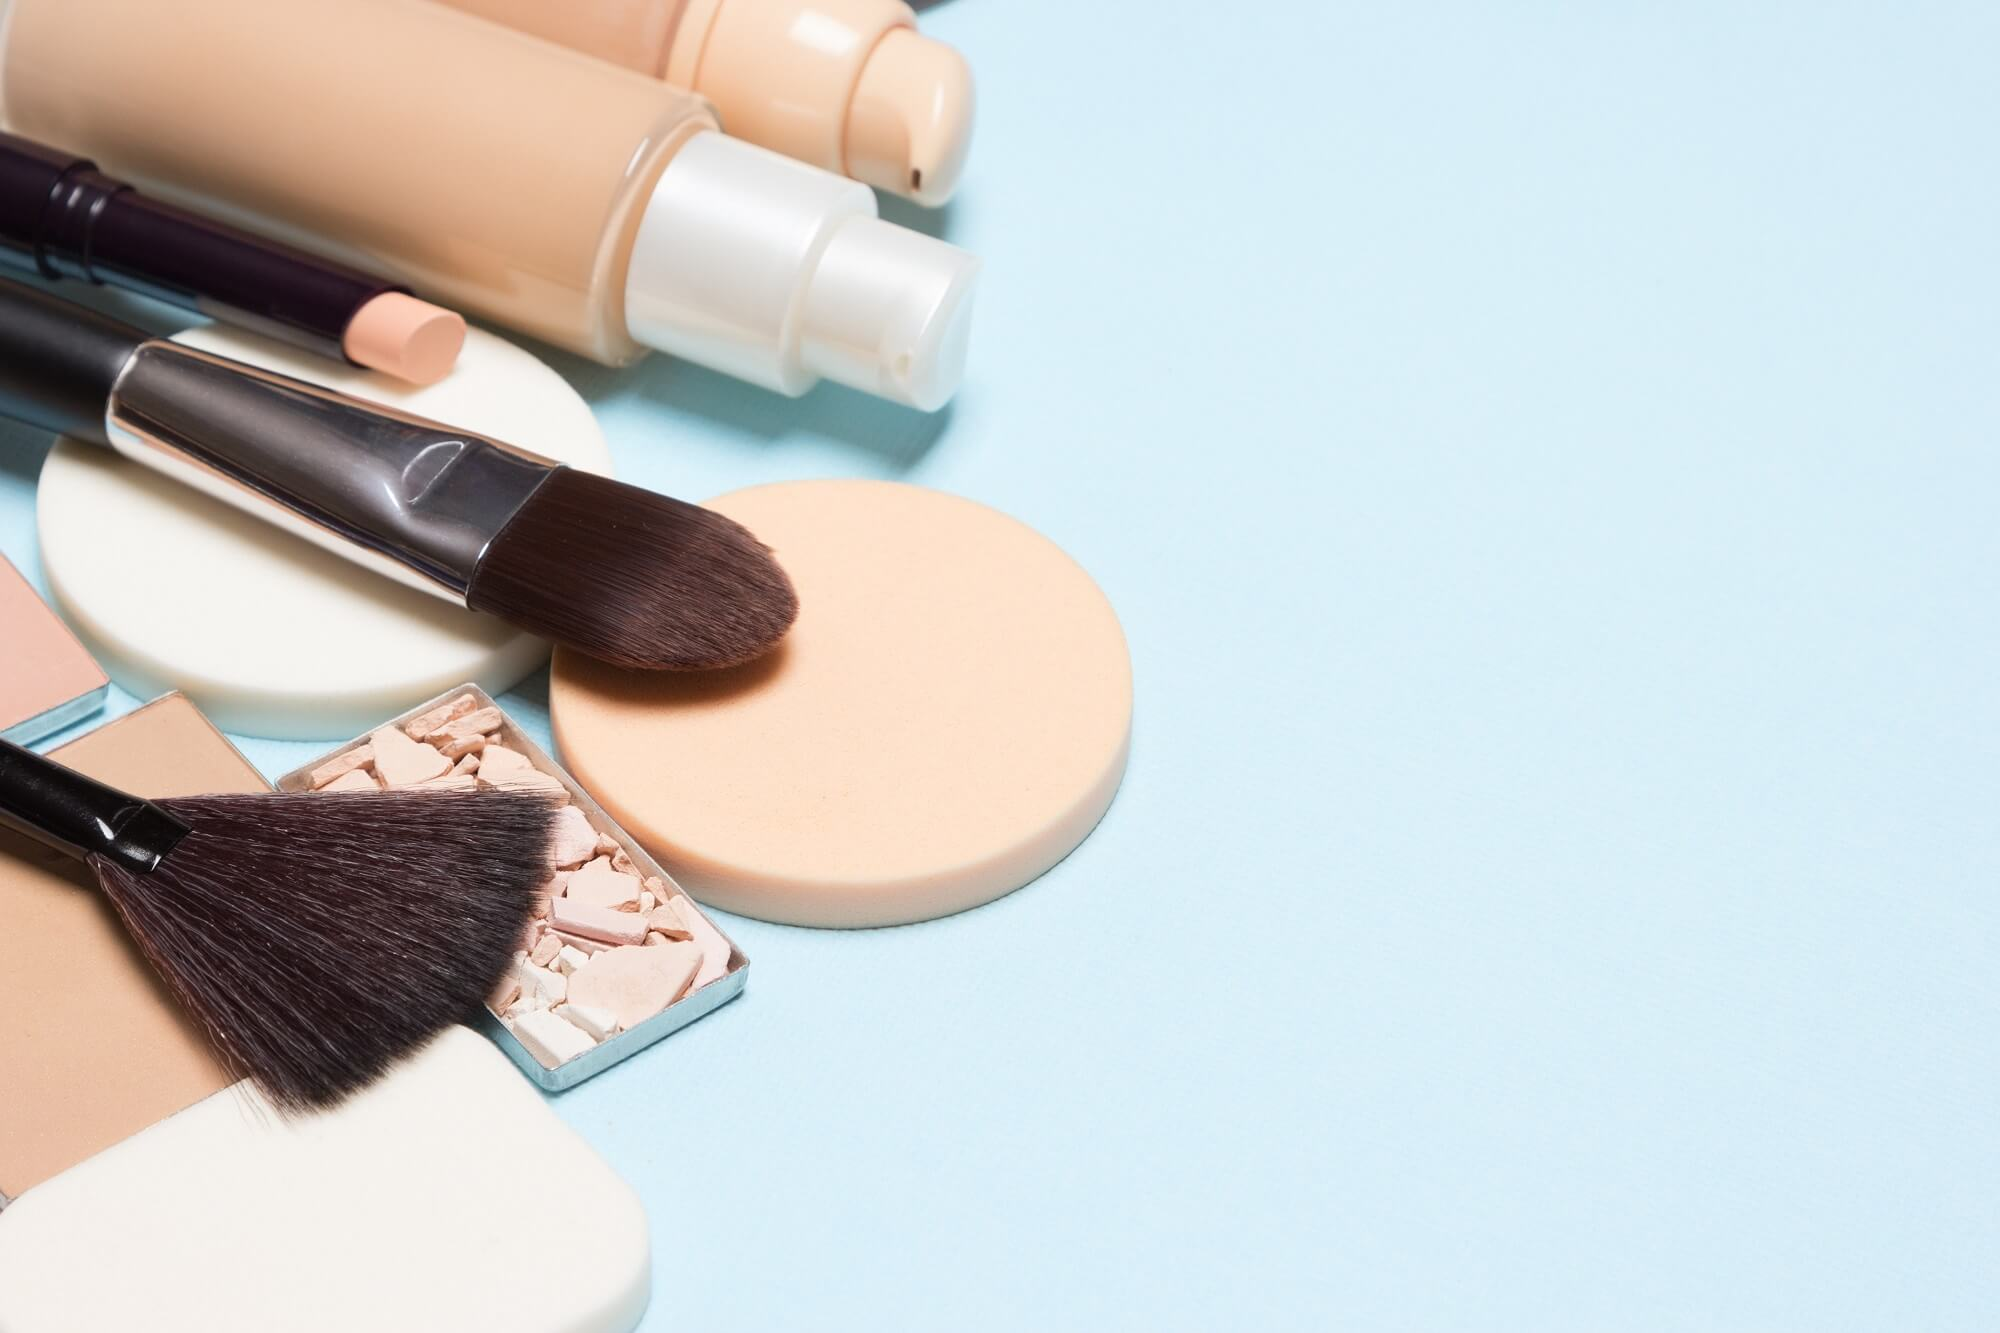 Makeup foundation products